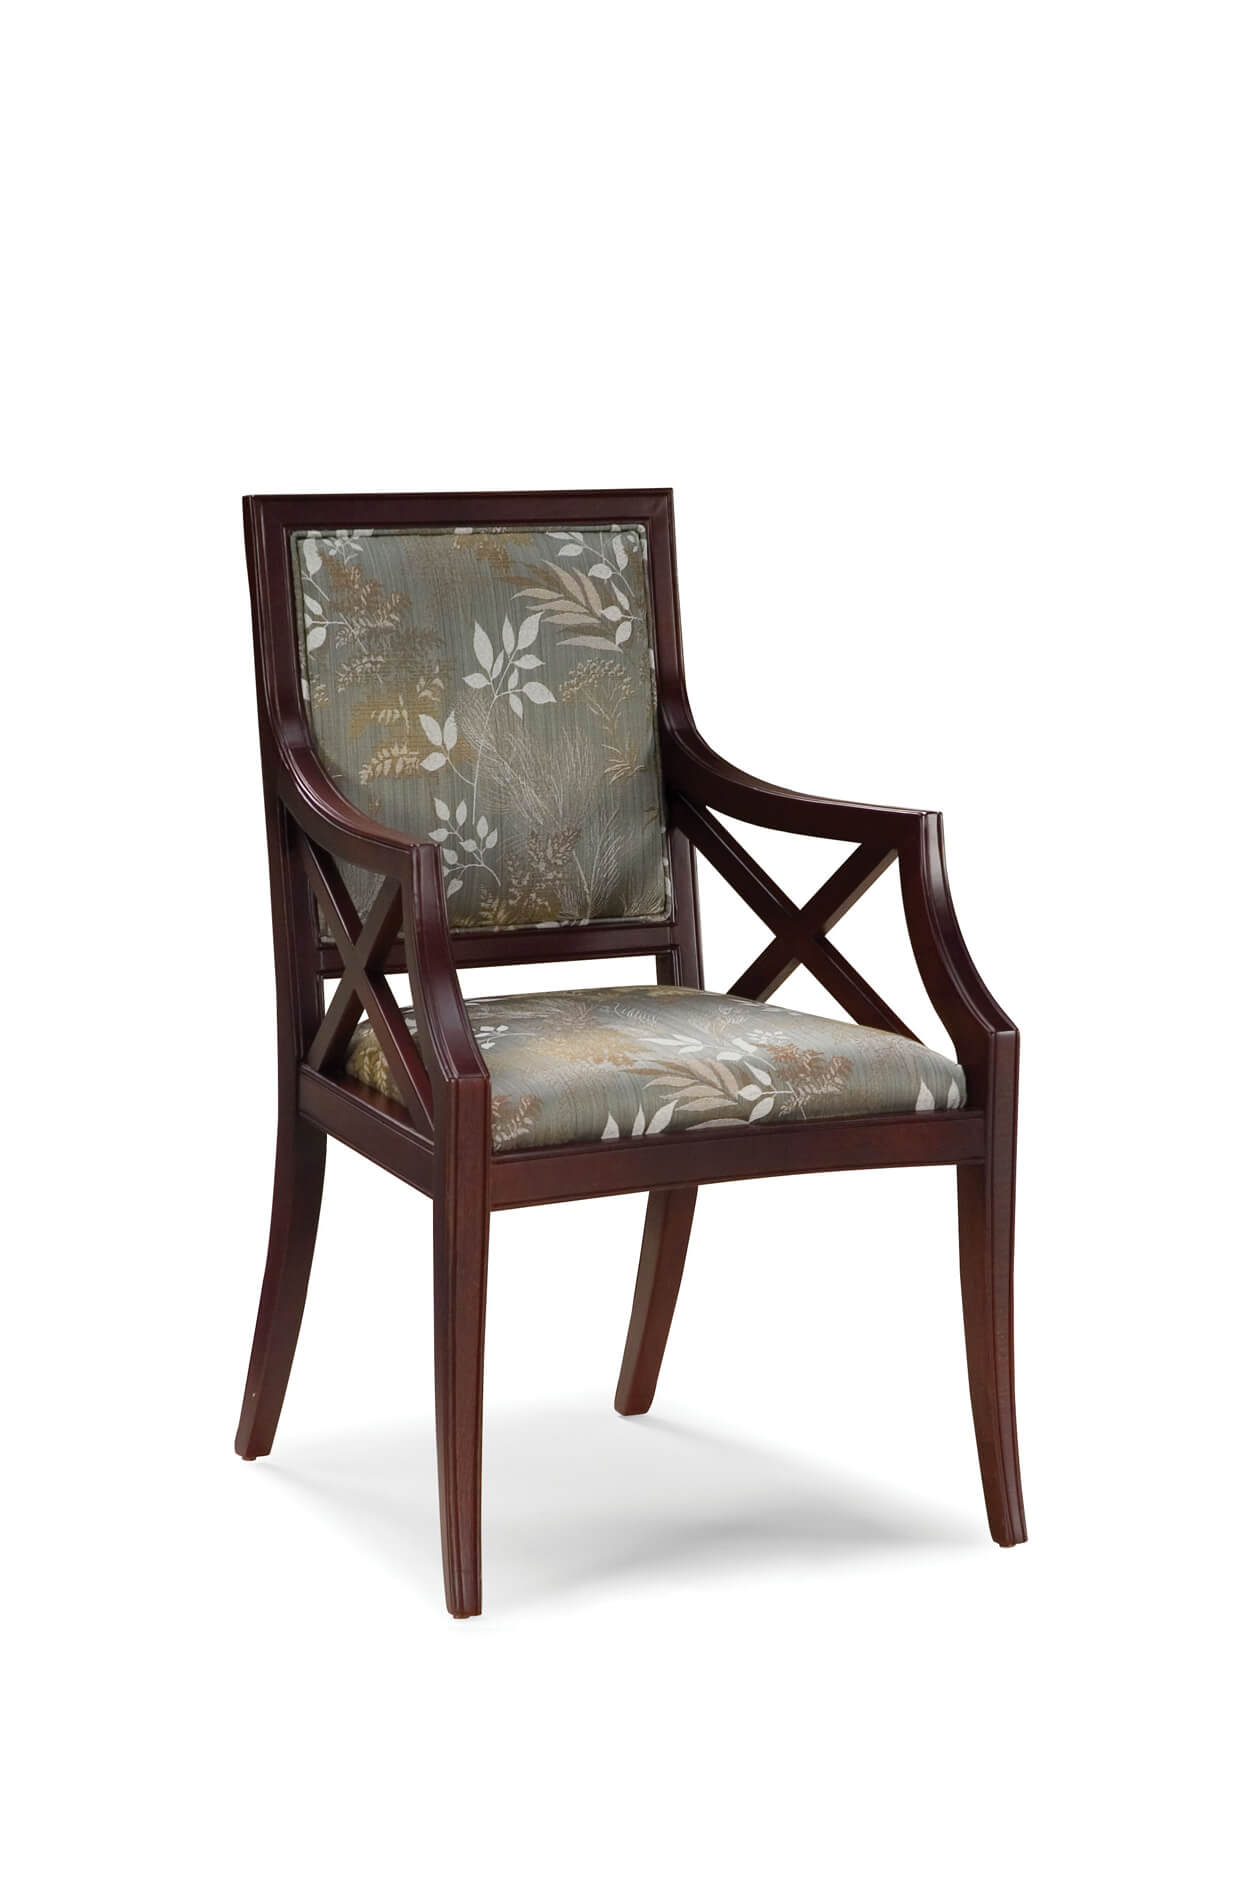 Fairfield's Brookfield Upholstered Dining Arm Chair